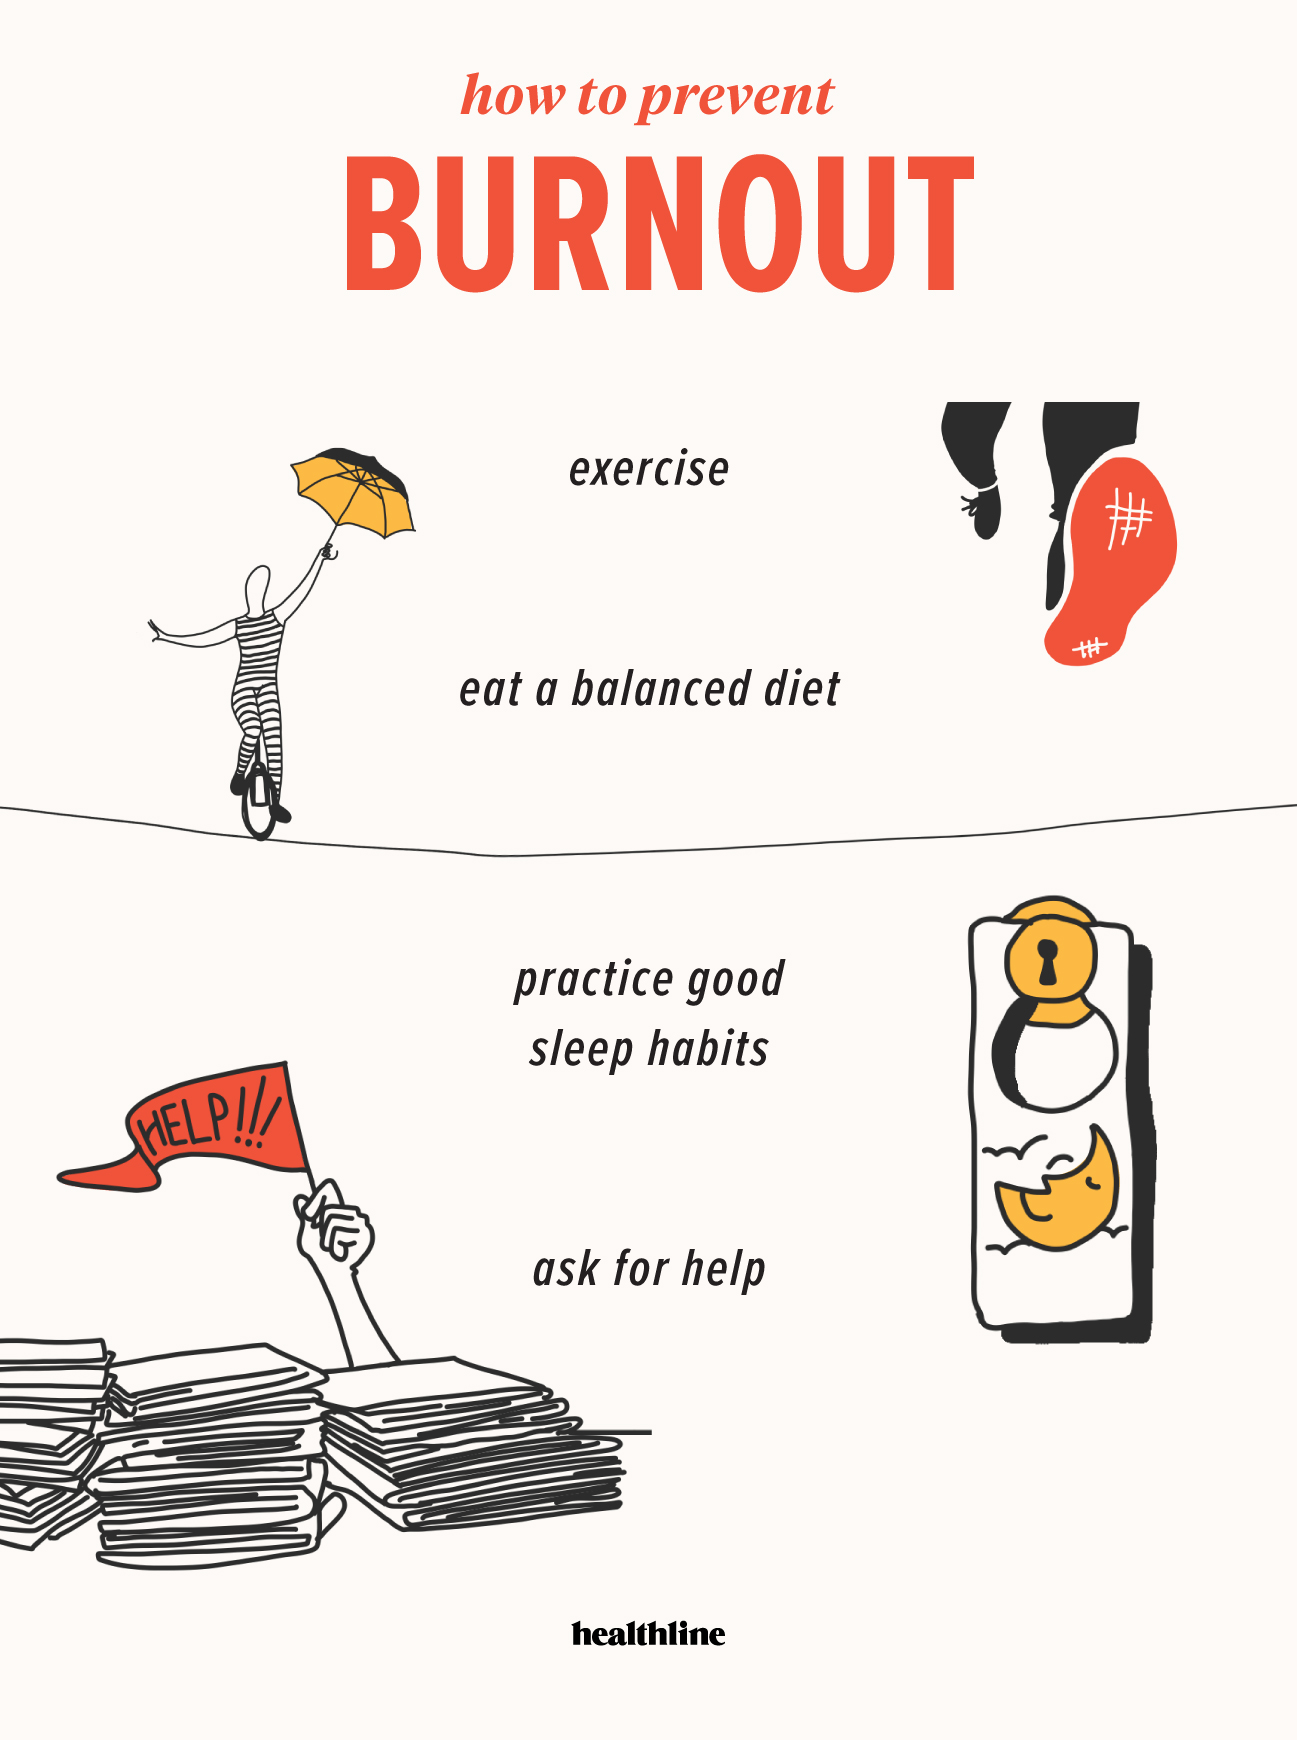 How to Identify and Prevent Burnout